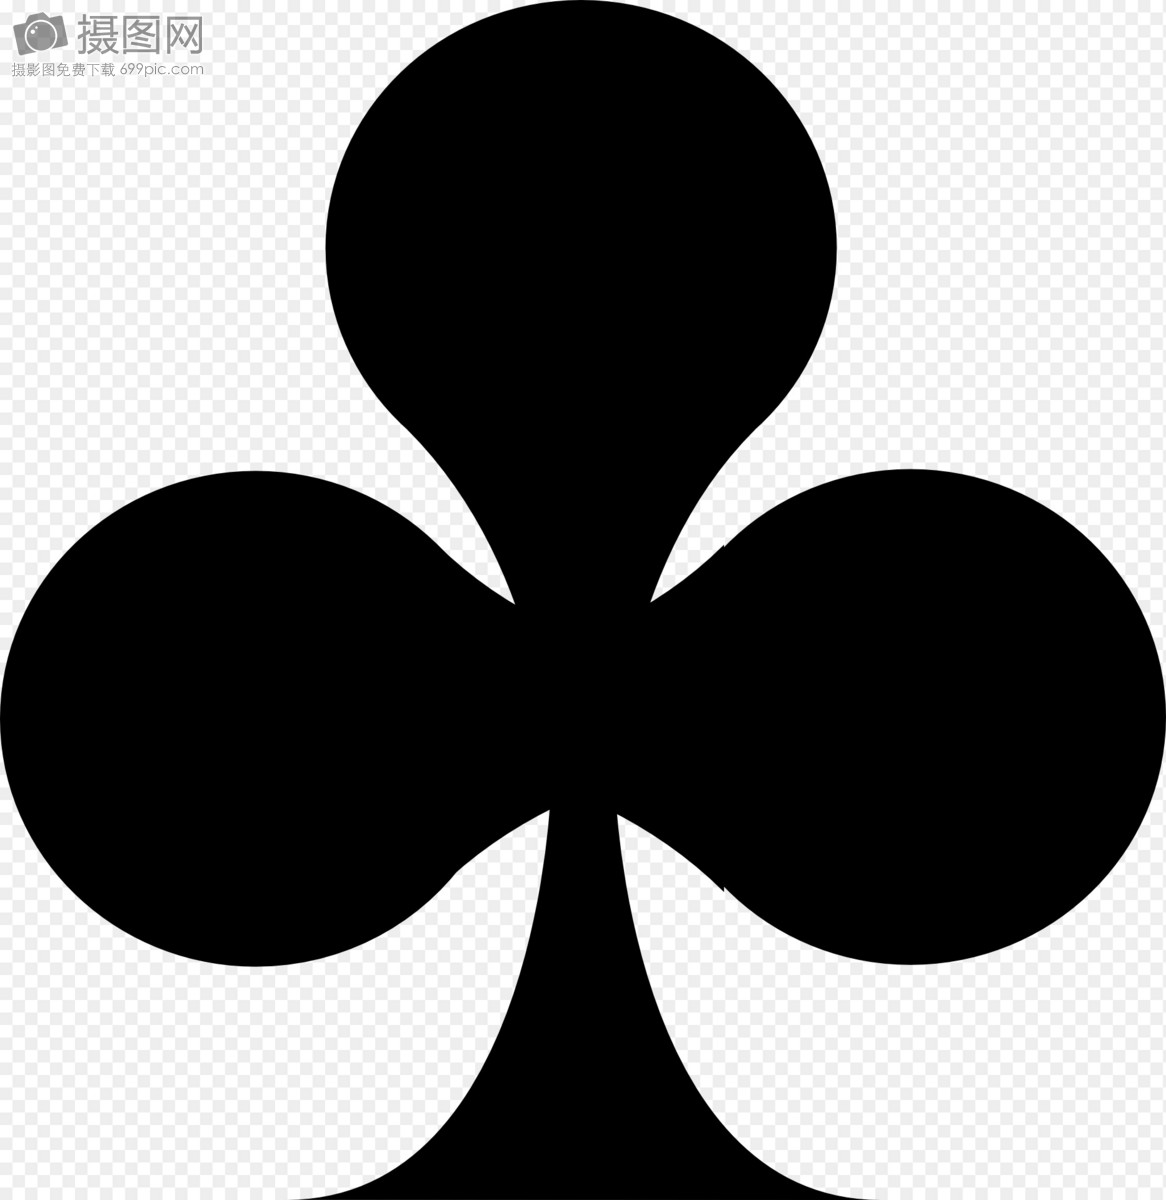 Game Poker Symbols Graphics Imagepicture Free Download